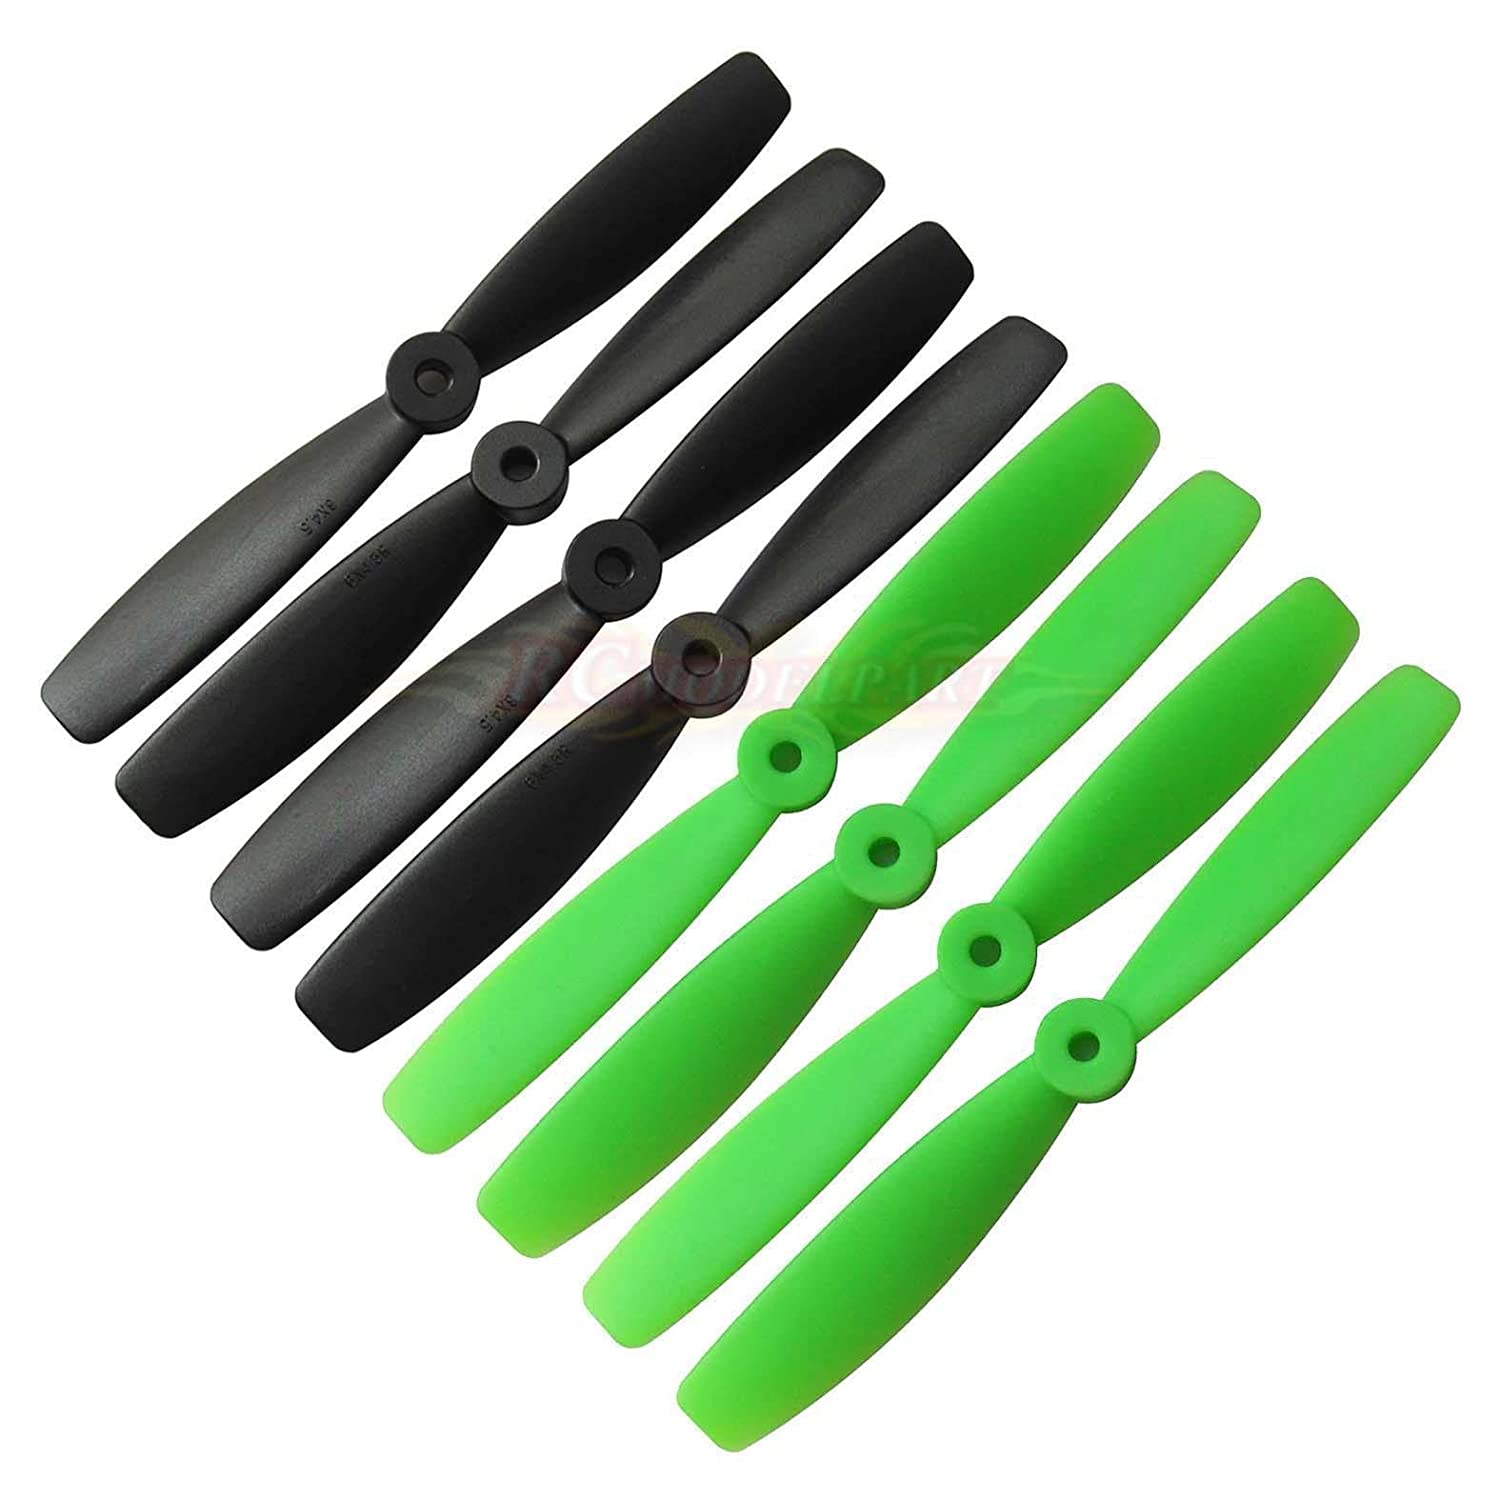 pack of 4 pairs Hobbypower 6045 Propeller CW CCW 6045 Props Black /& Green for Mini QAV250 TL250H TL250C TL280H TH280C